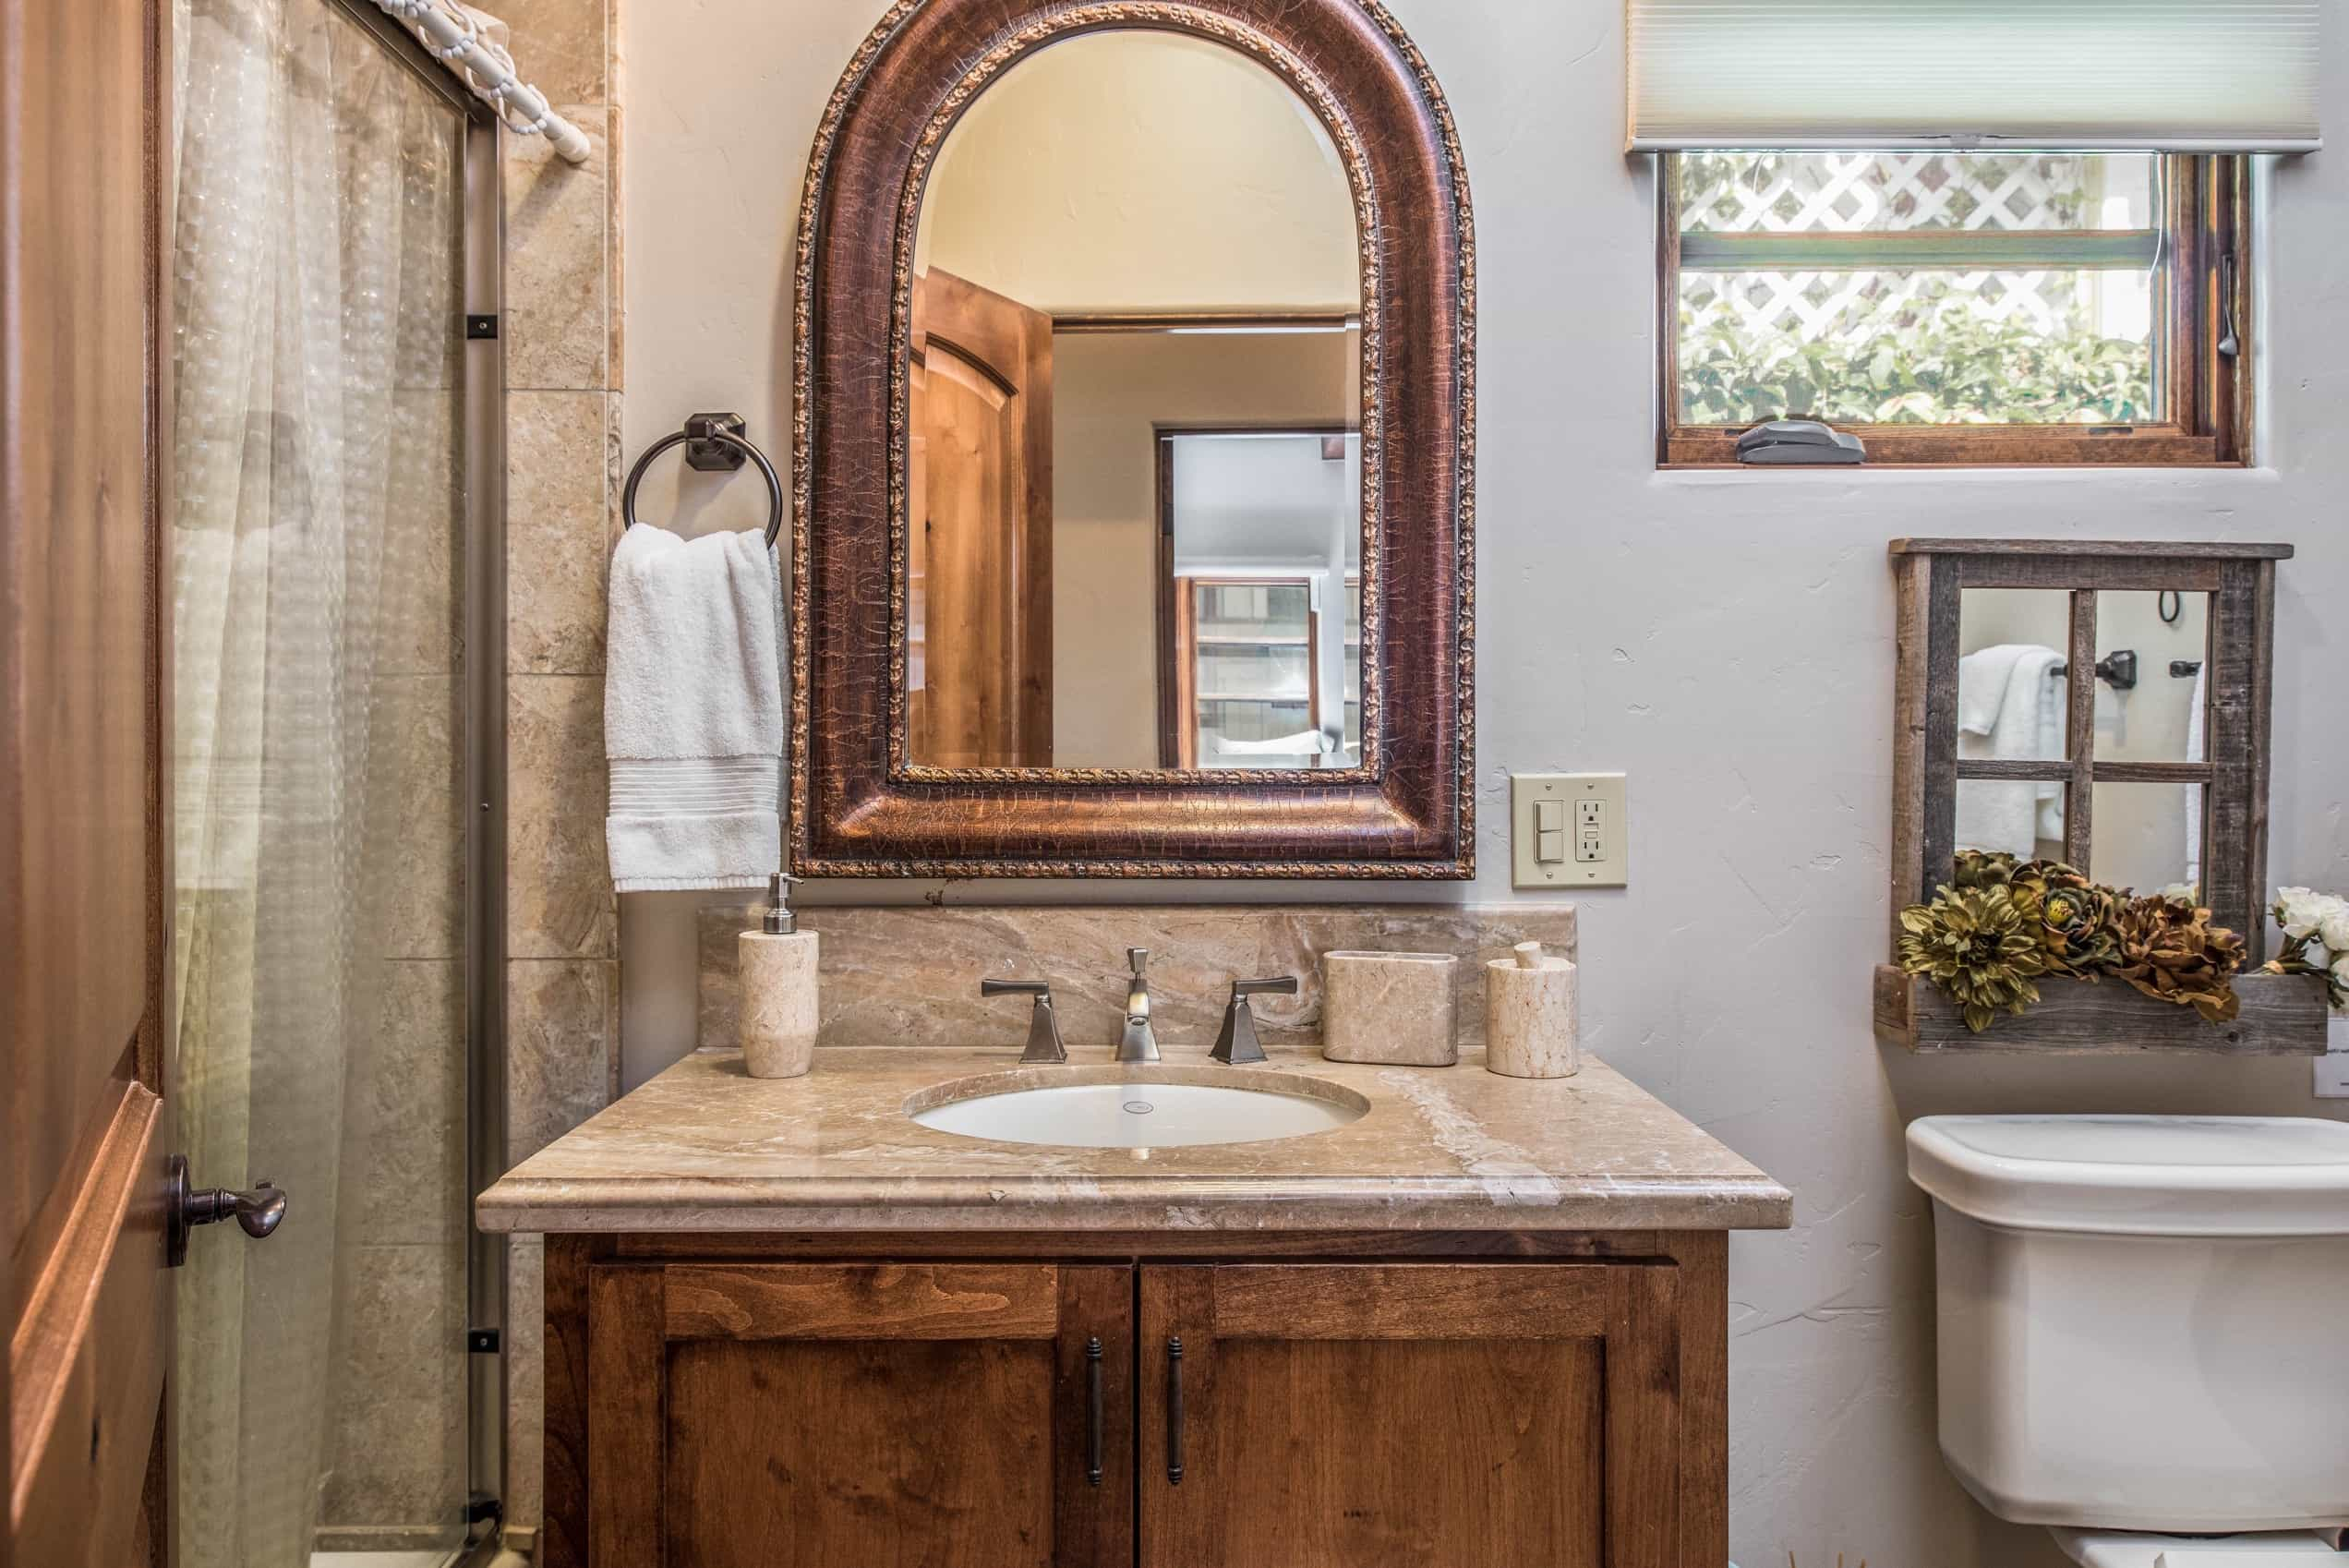 Featured Image of Granite Countertop For Cottage Bathroom With Single Vanity And Arched Mirror